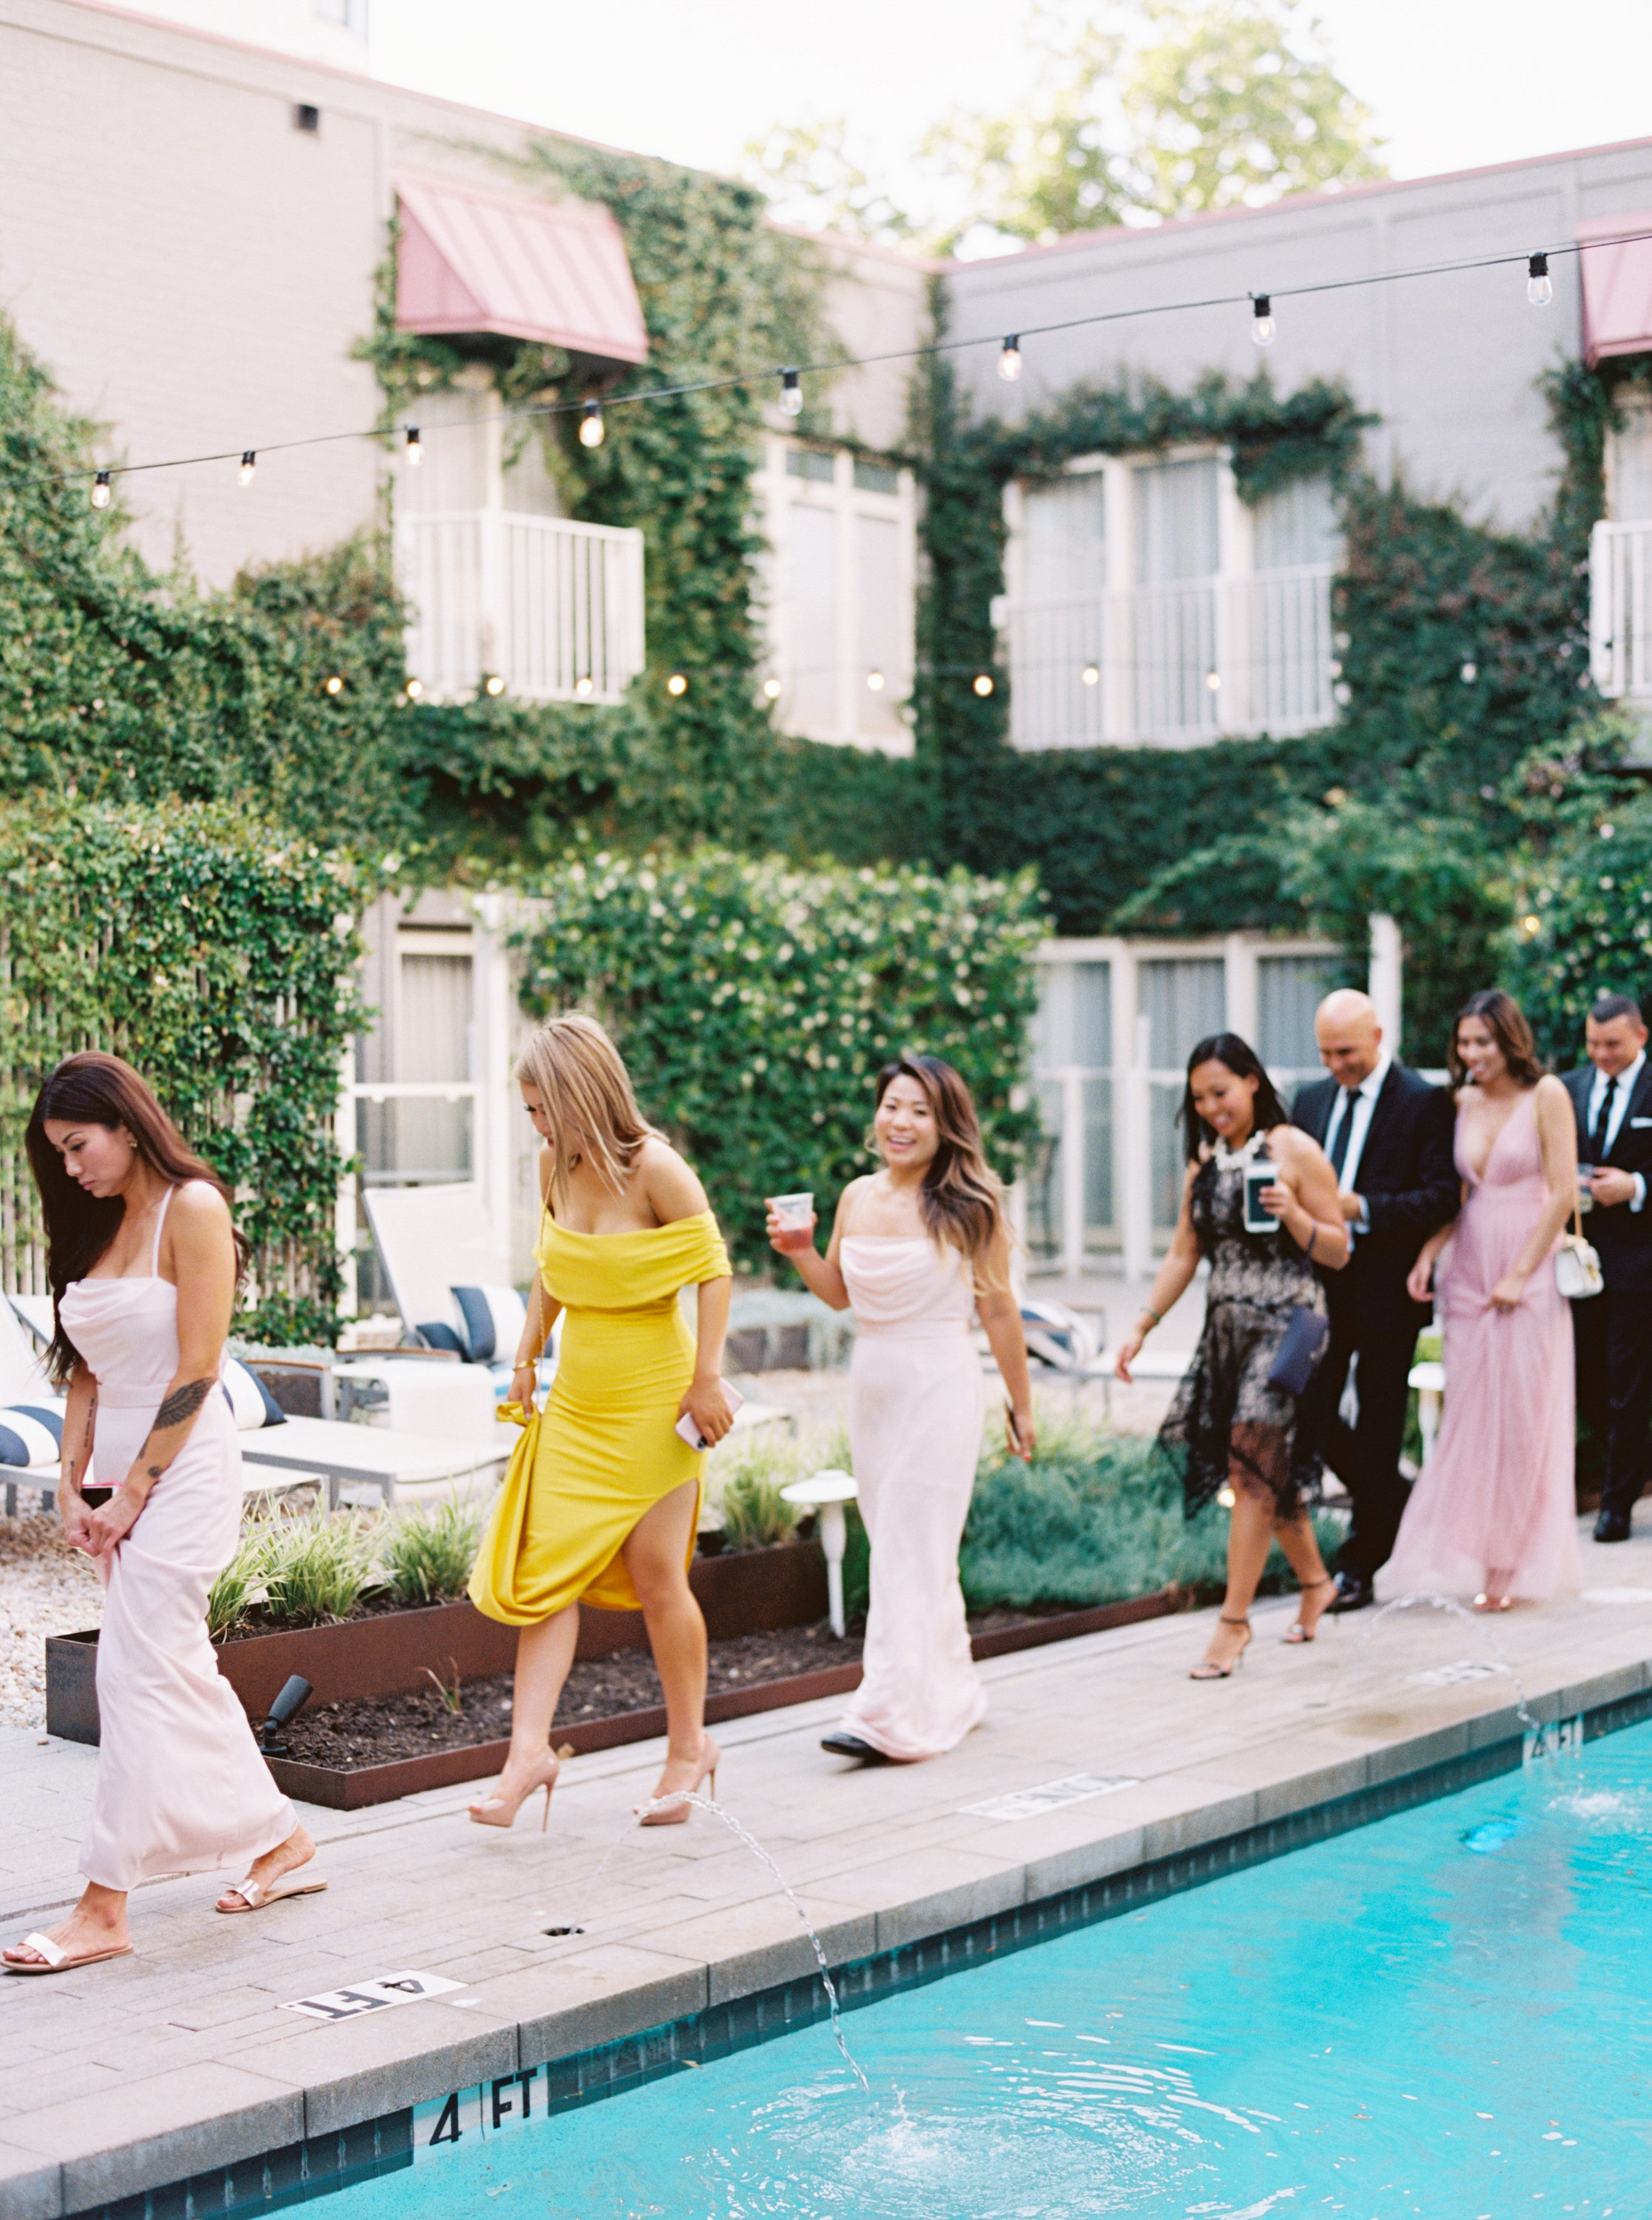 3 Things a Destination Wedding Guest Should Never Do